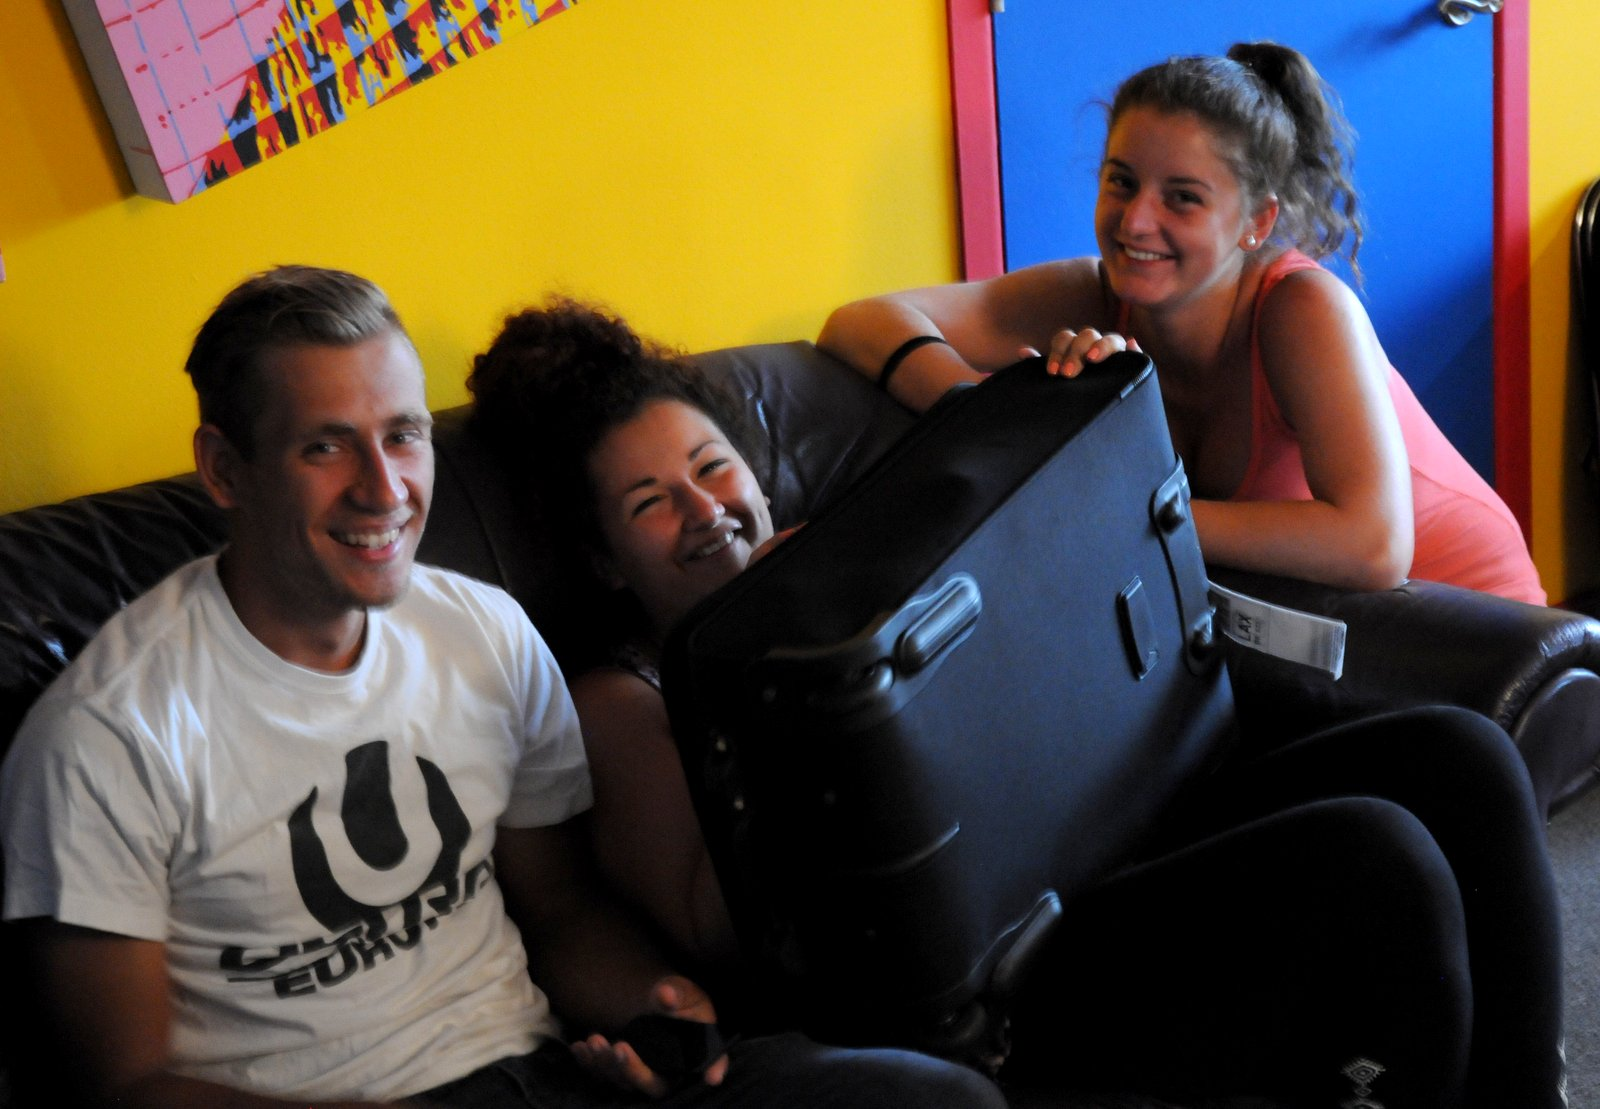 Denes, Csenge & Eszter sit on the purple couch in my living room. Csenge holds Denes suitcase on her lap and laughs